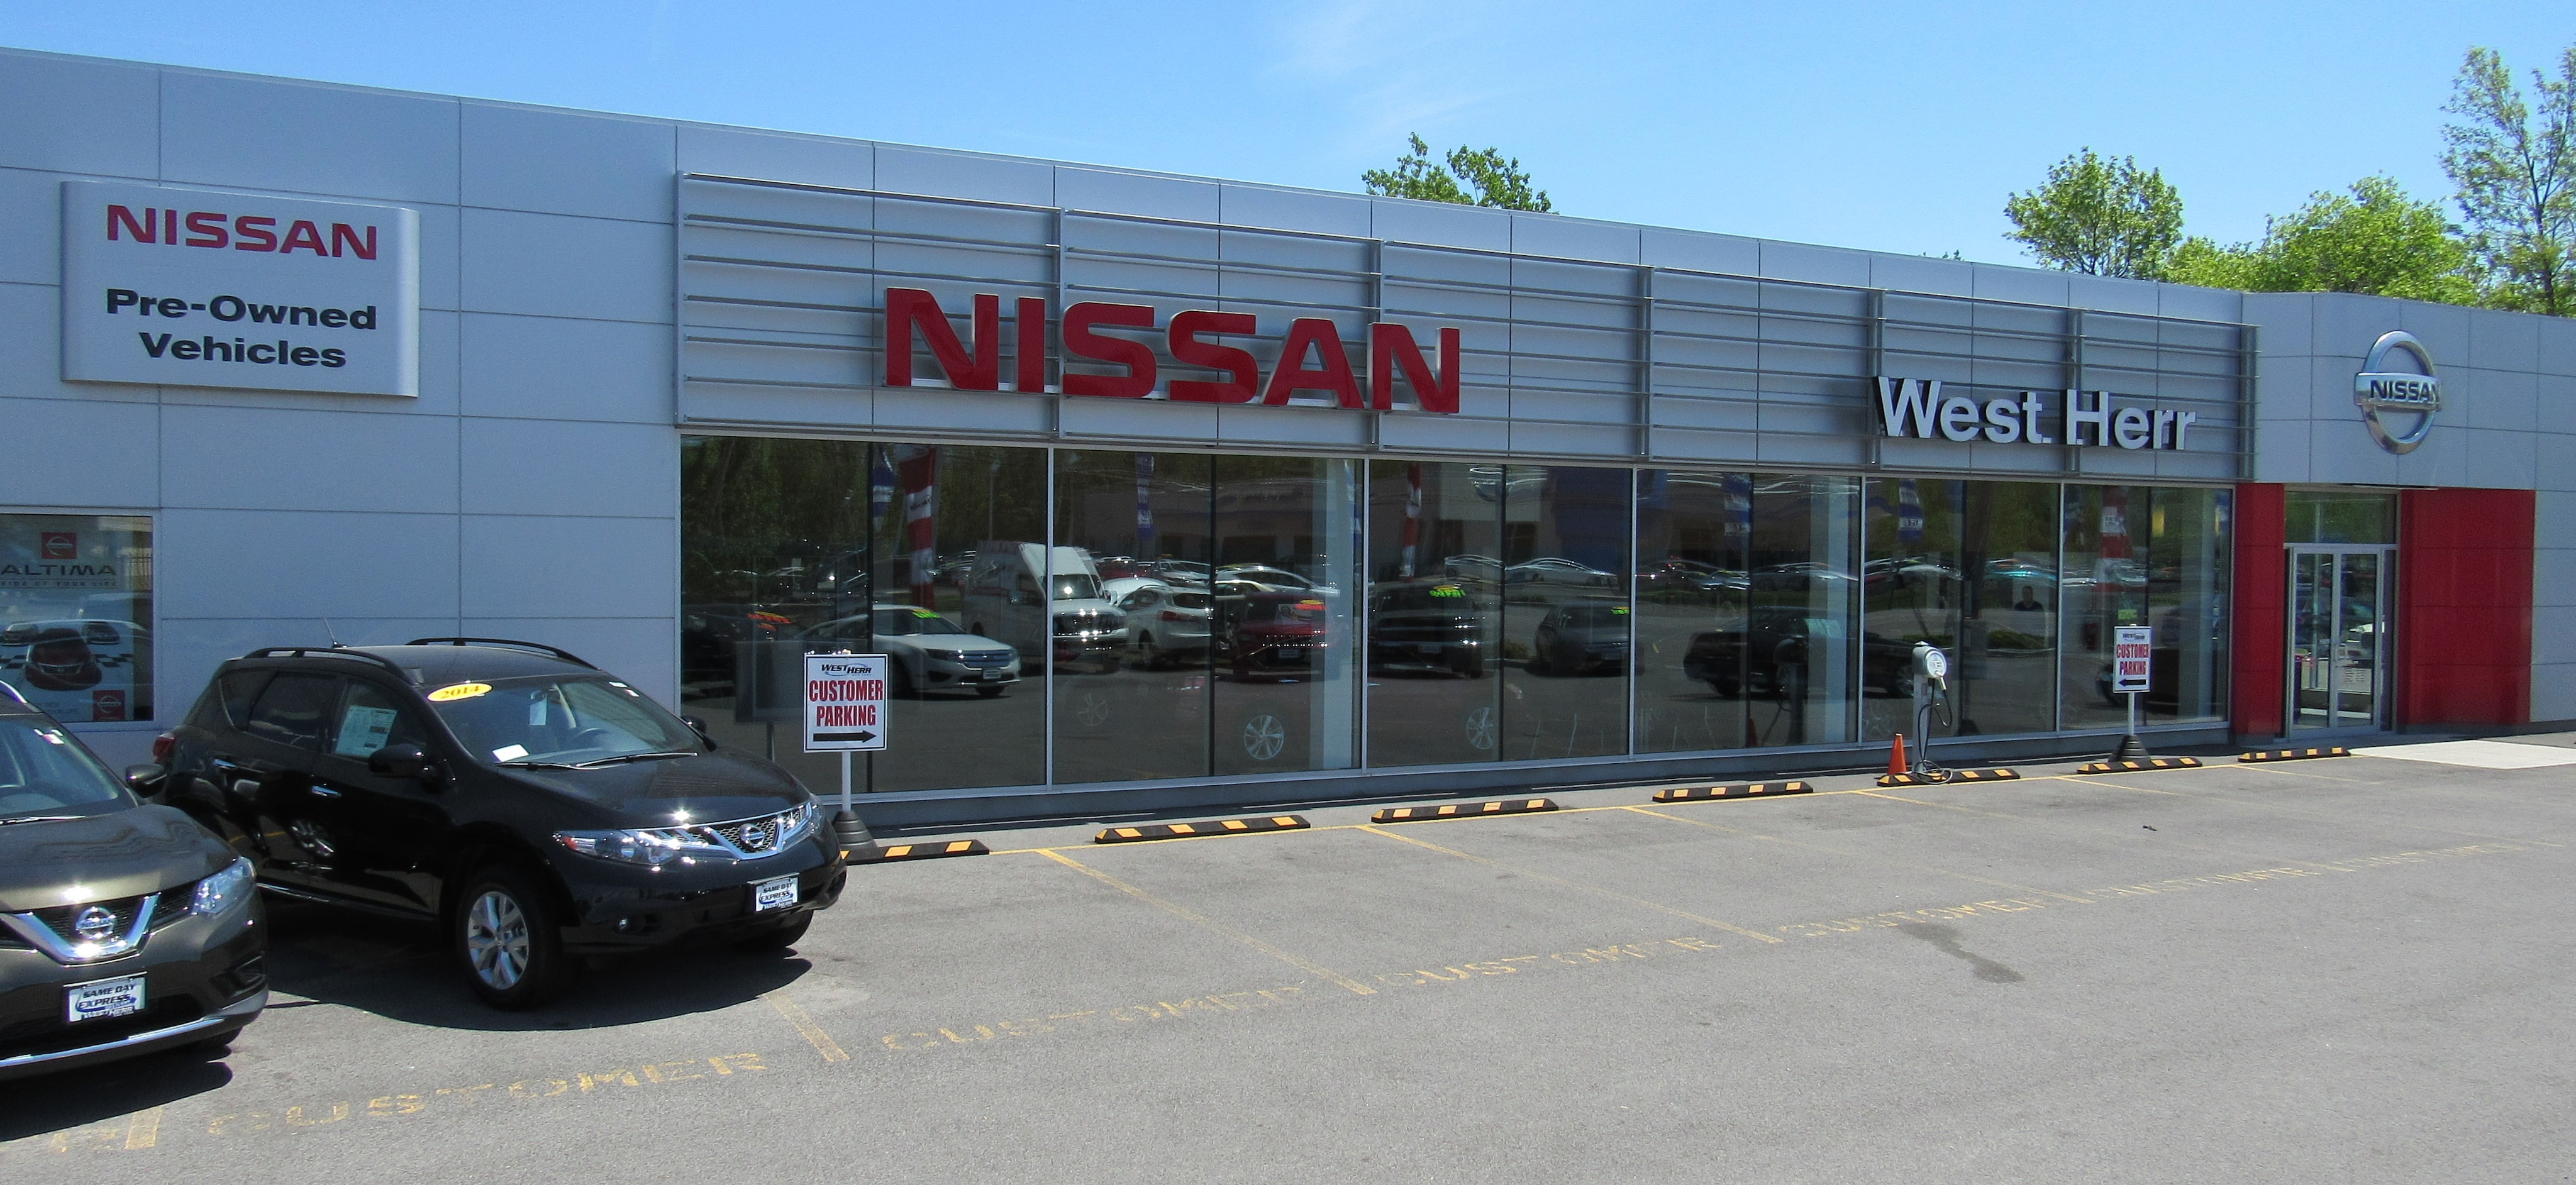 West Herr Nissan of Lockport | New Nissan dealership in Lockport, NY ...